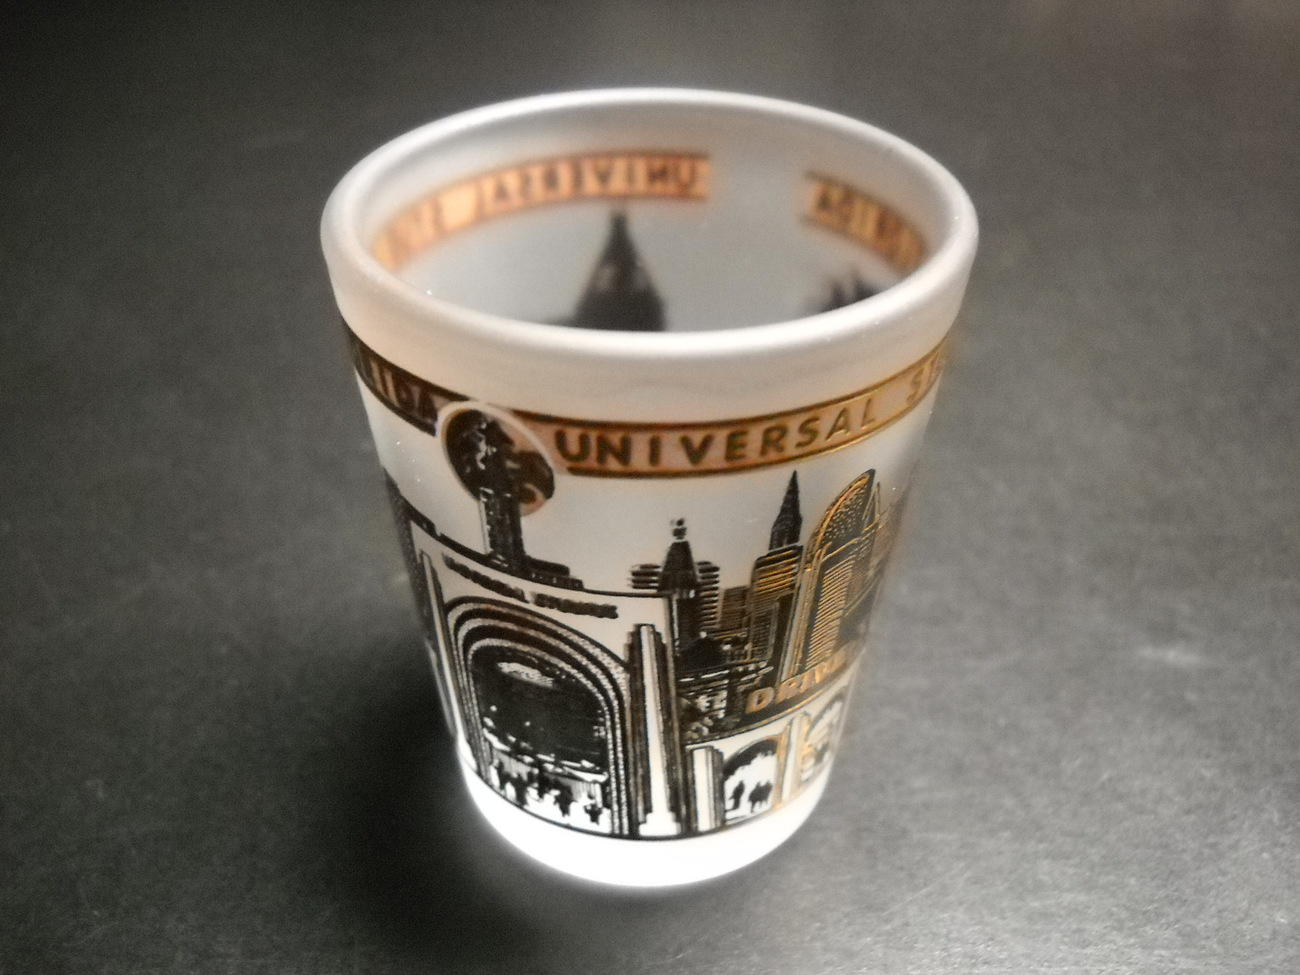 Universal Studios Florida Shot Glass Frosted Glass with Golds and Black